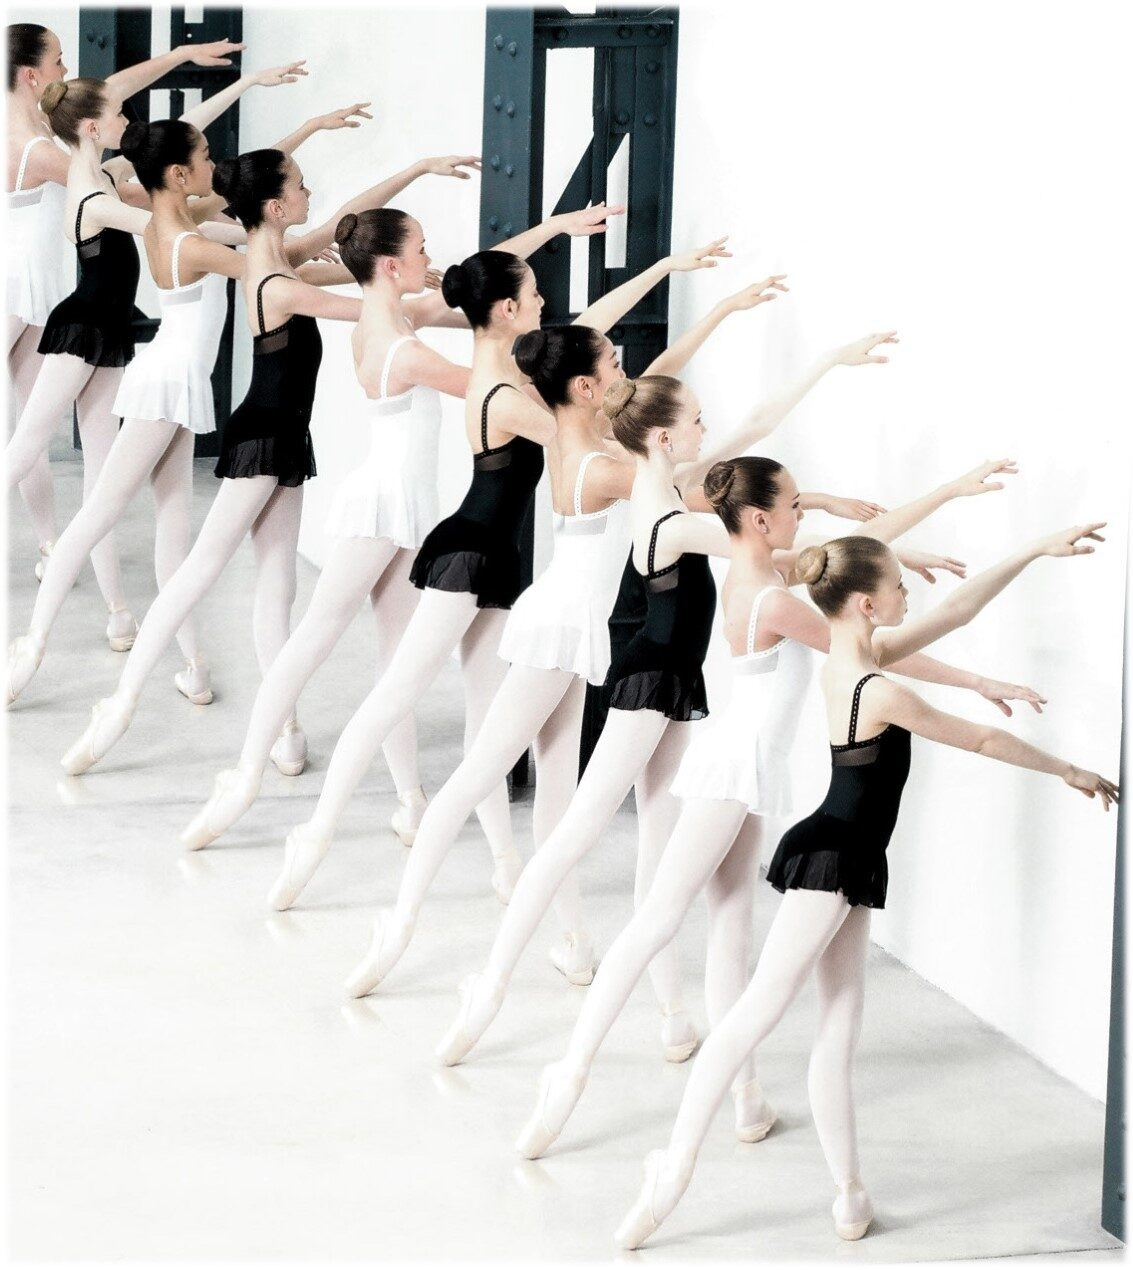 Dancers in a line